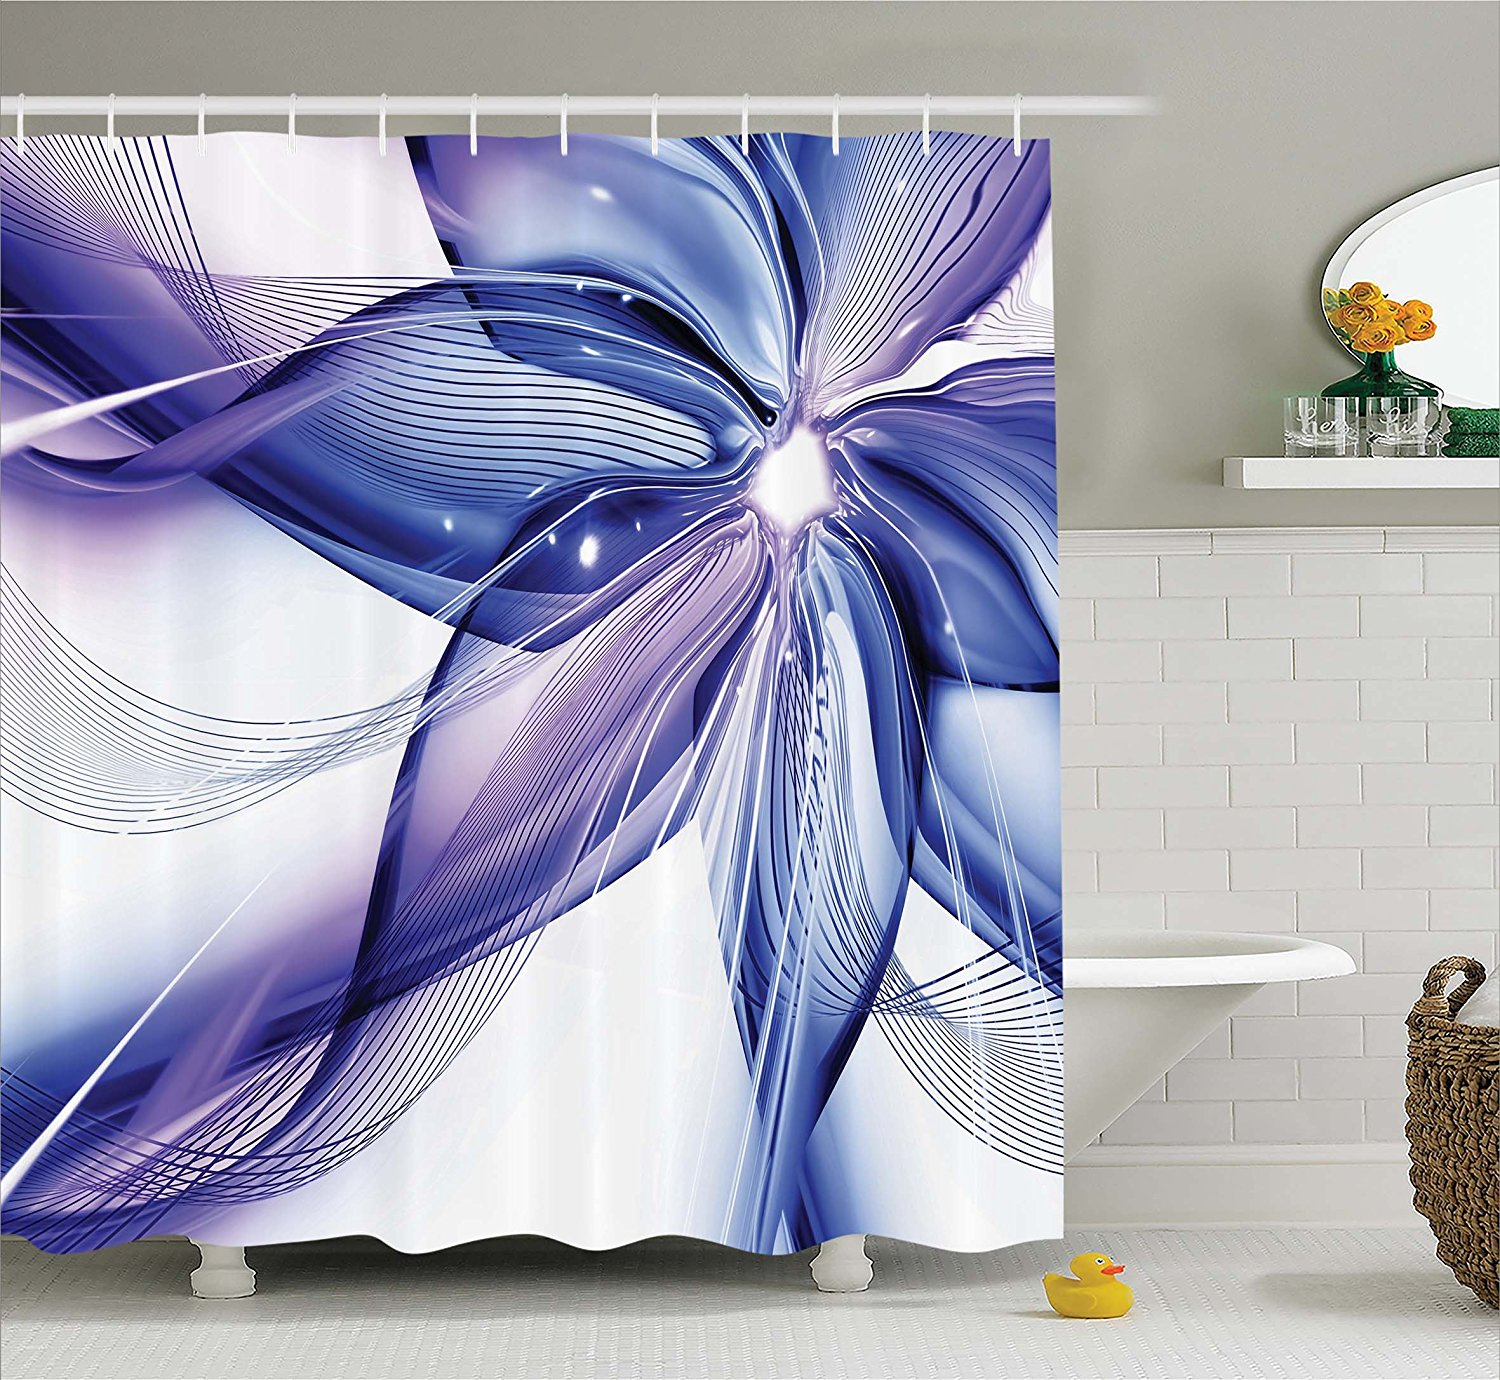 Ambesonne Abstract Decor Shower Curtain, Geometrical Smoke like Striped Huge Flower Floral Design Artwork, Fabric Bathroom Decor Set with Hooks, 70 Inches, Blue White and Purple